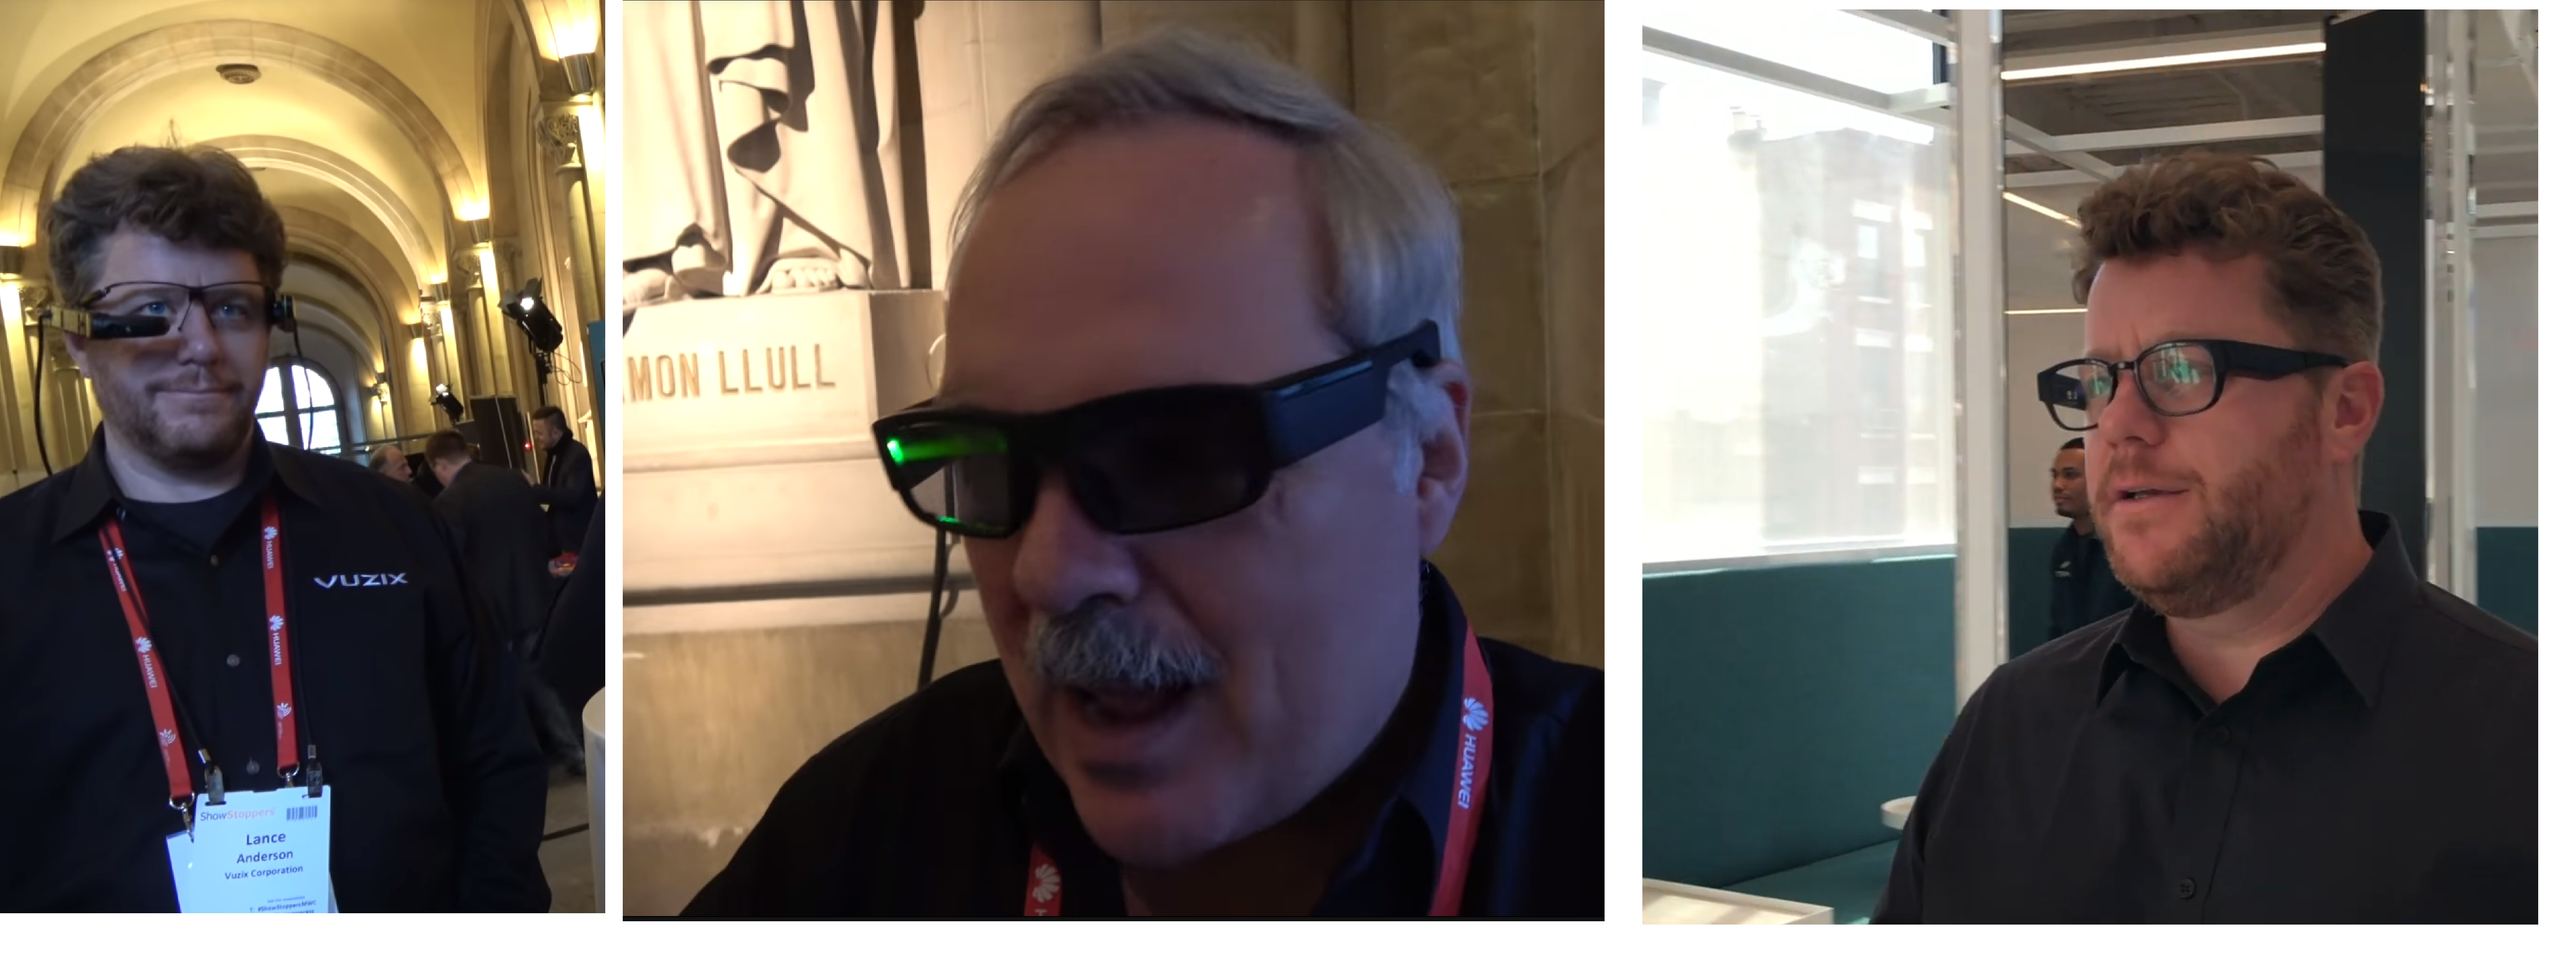 Vuzix: Seeing The Unaugmented Reality